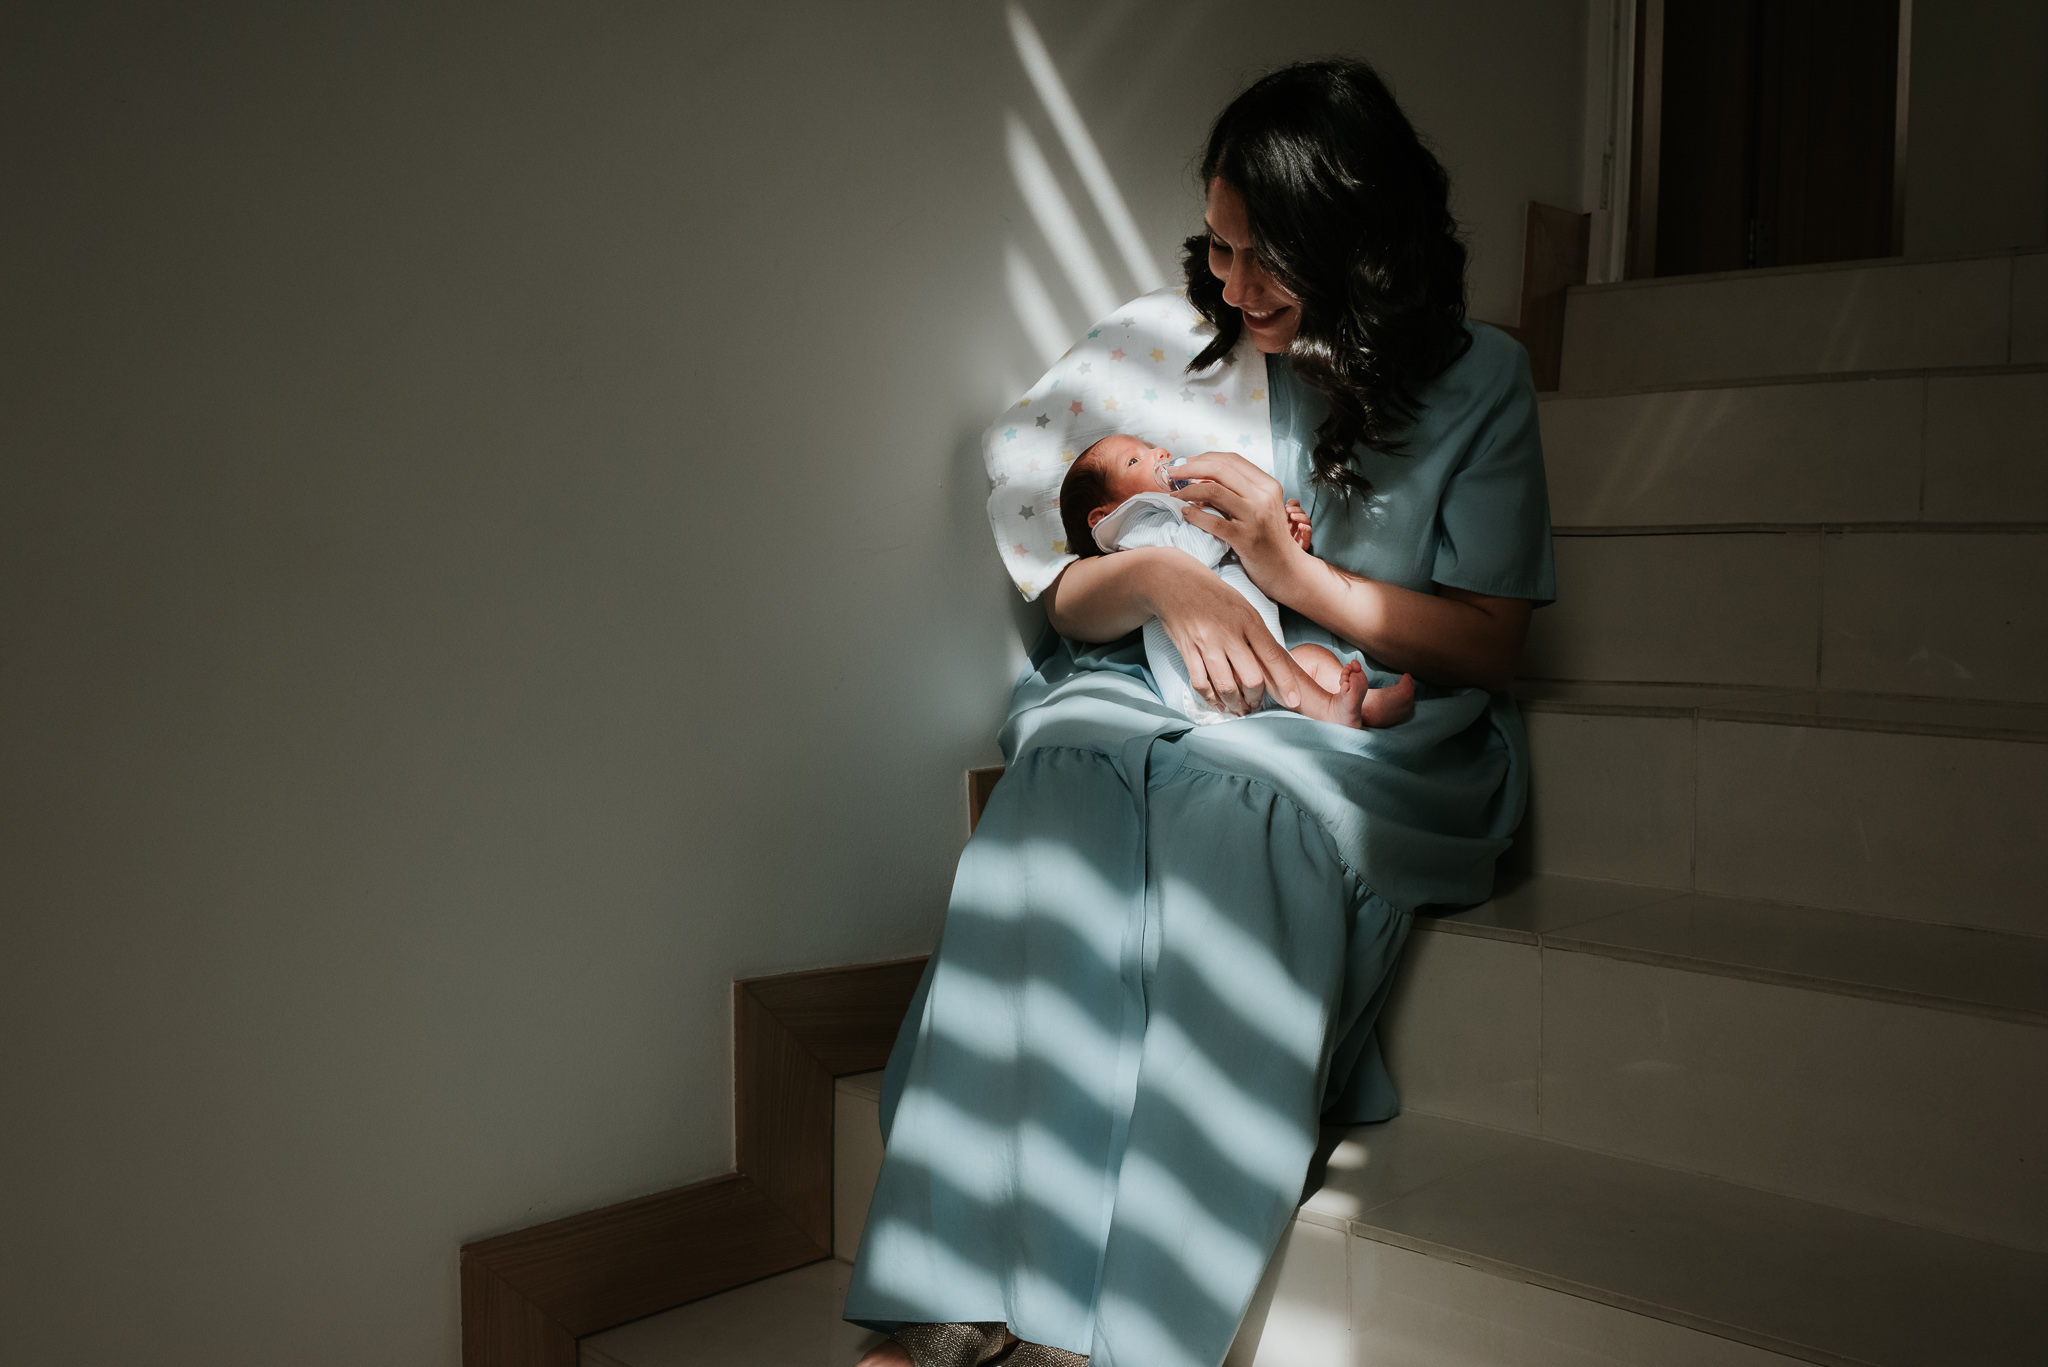 Lana-Photographs-Dubai-Newborn-Photographer-Haya-PSLR--15.jpg